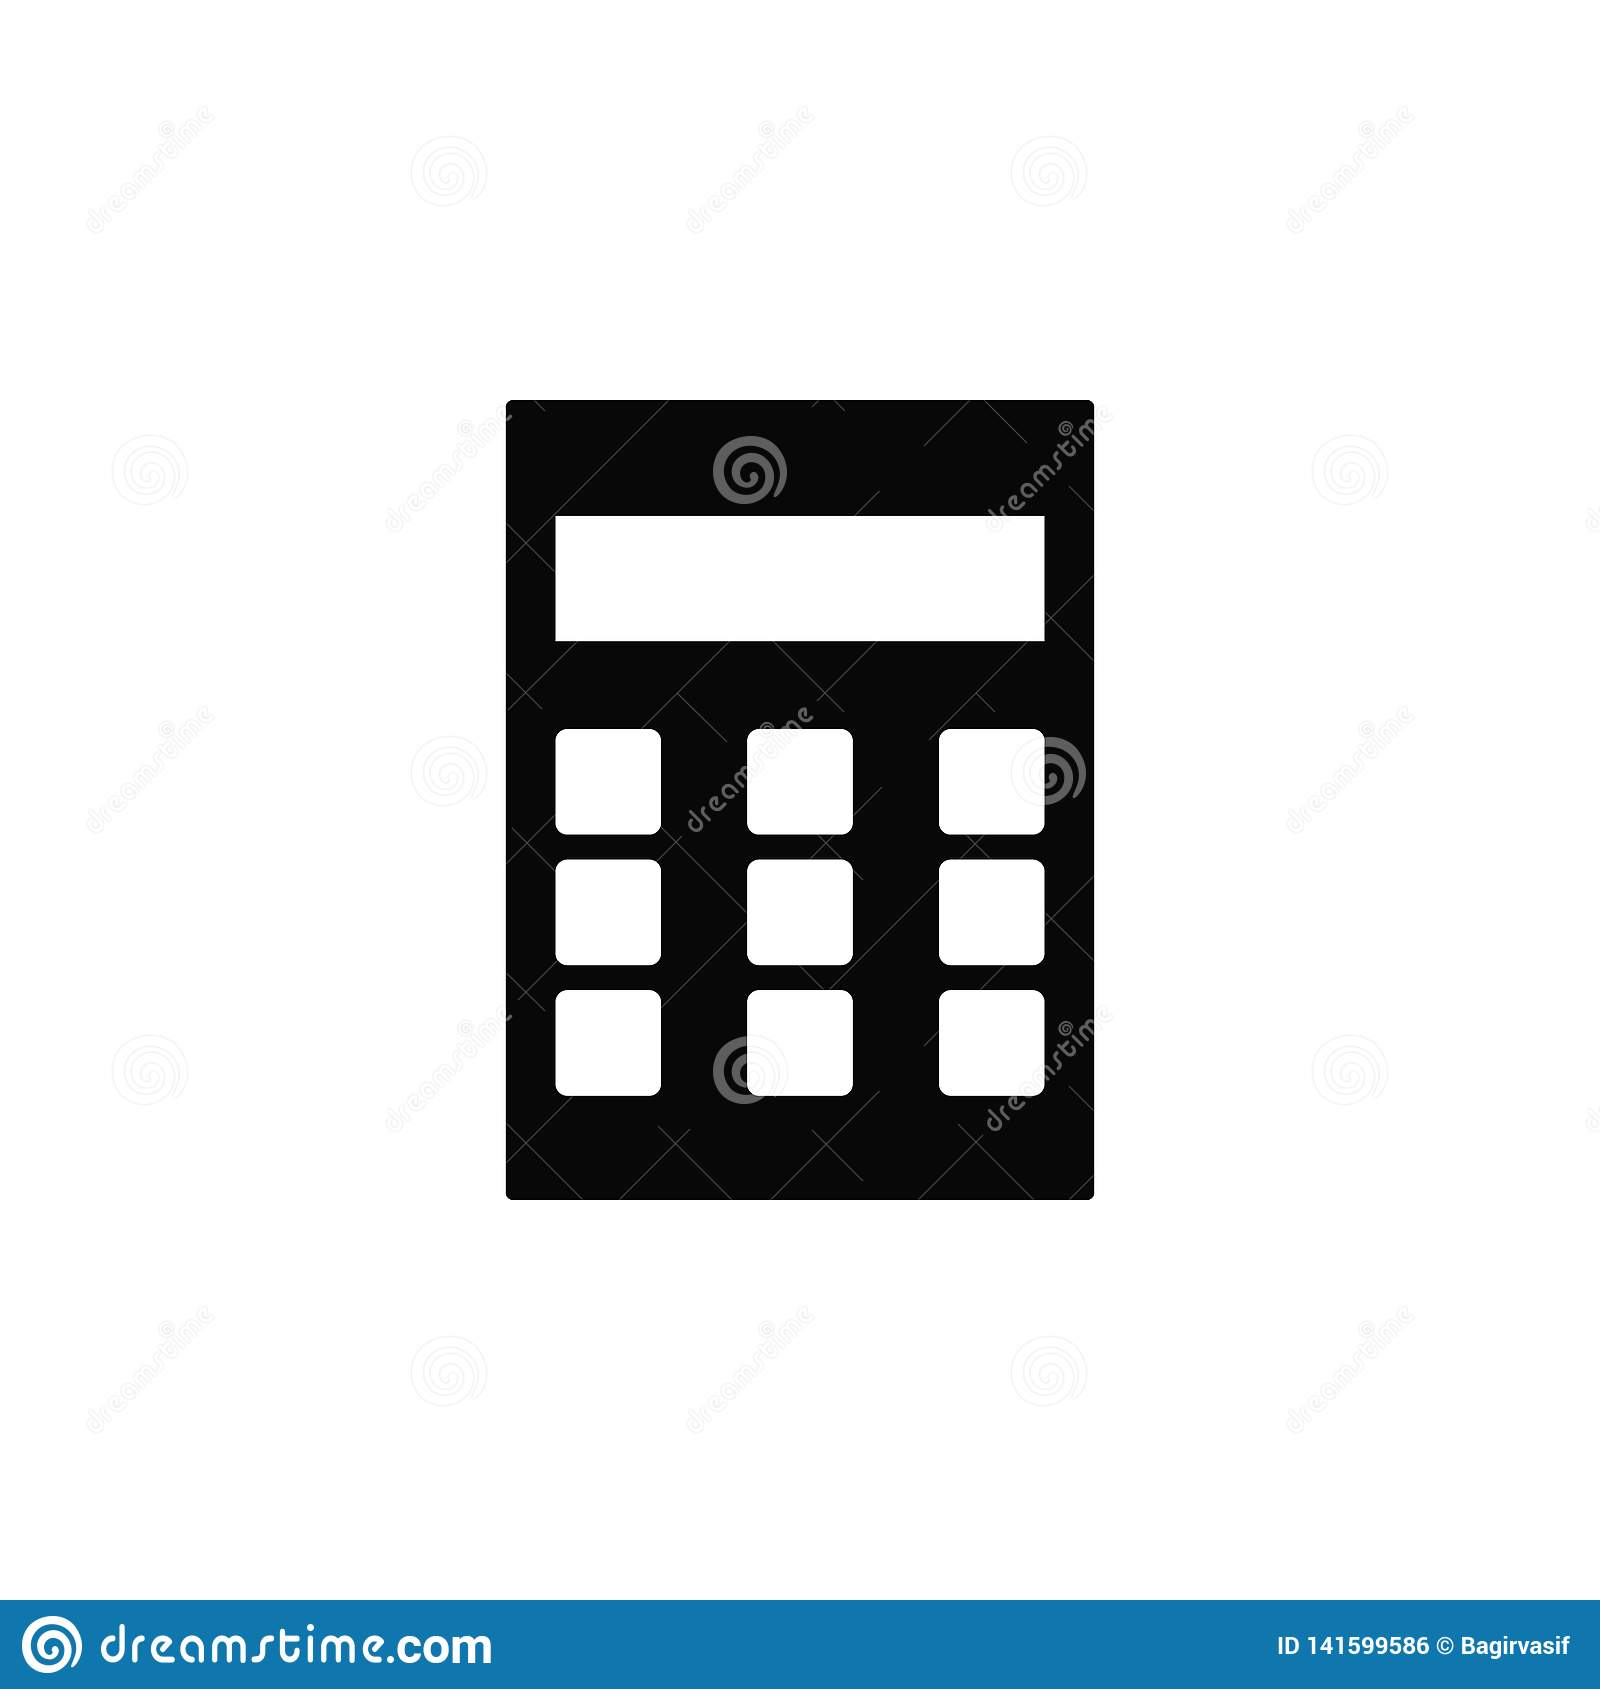 Calculator, icon. Element of simple icon for websites, web design, mobile app, infographics. Thick line icon for website design